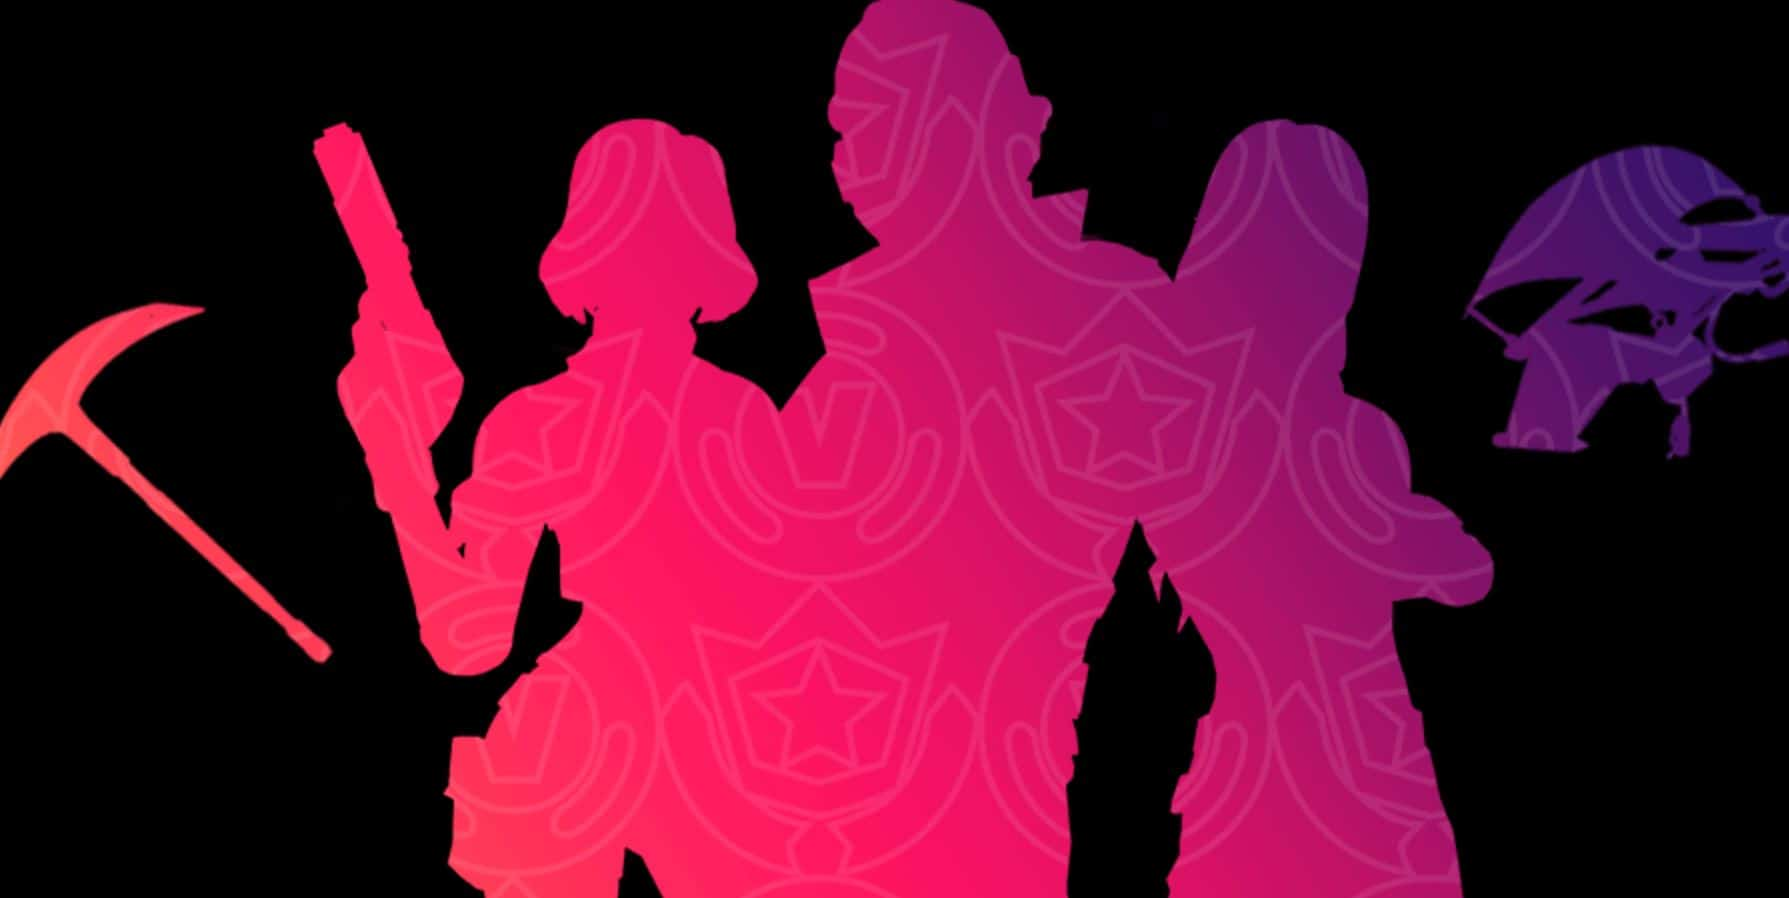 Fortnite Chapter 2 Season 5 Battle Pass Skins Leaked Mandalorian Skin Baby Yoda Back Bling Fortnite Insider Take a look at the items that are coming up for fortnite to get an idea of the possible fortnite items in the shop tomorrow. fortnite chapter 2 season 5 battle pass